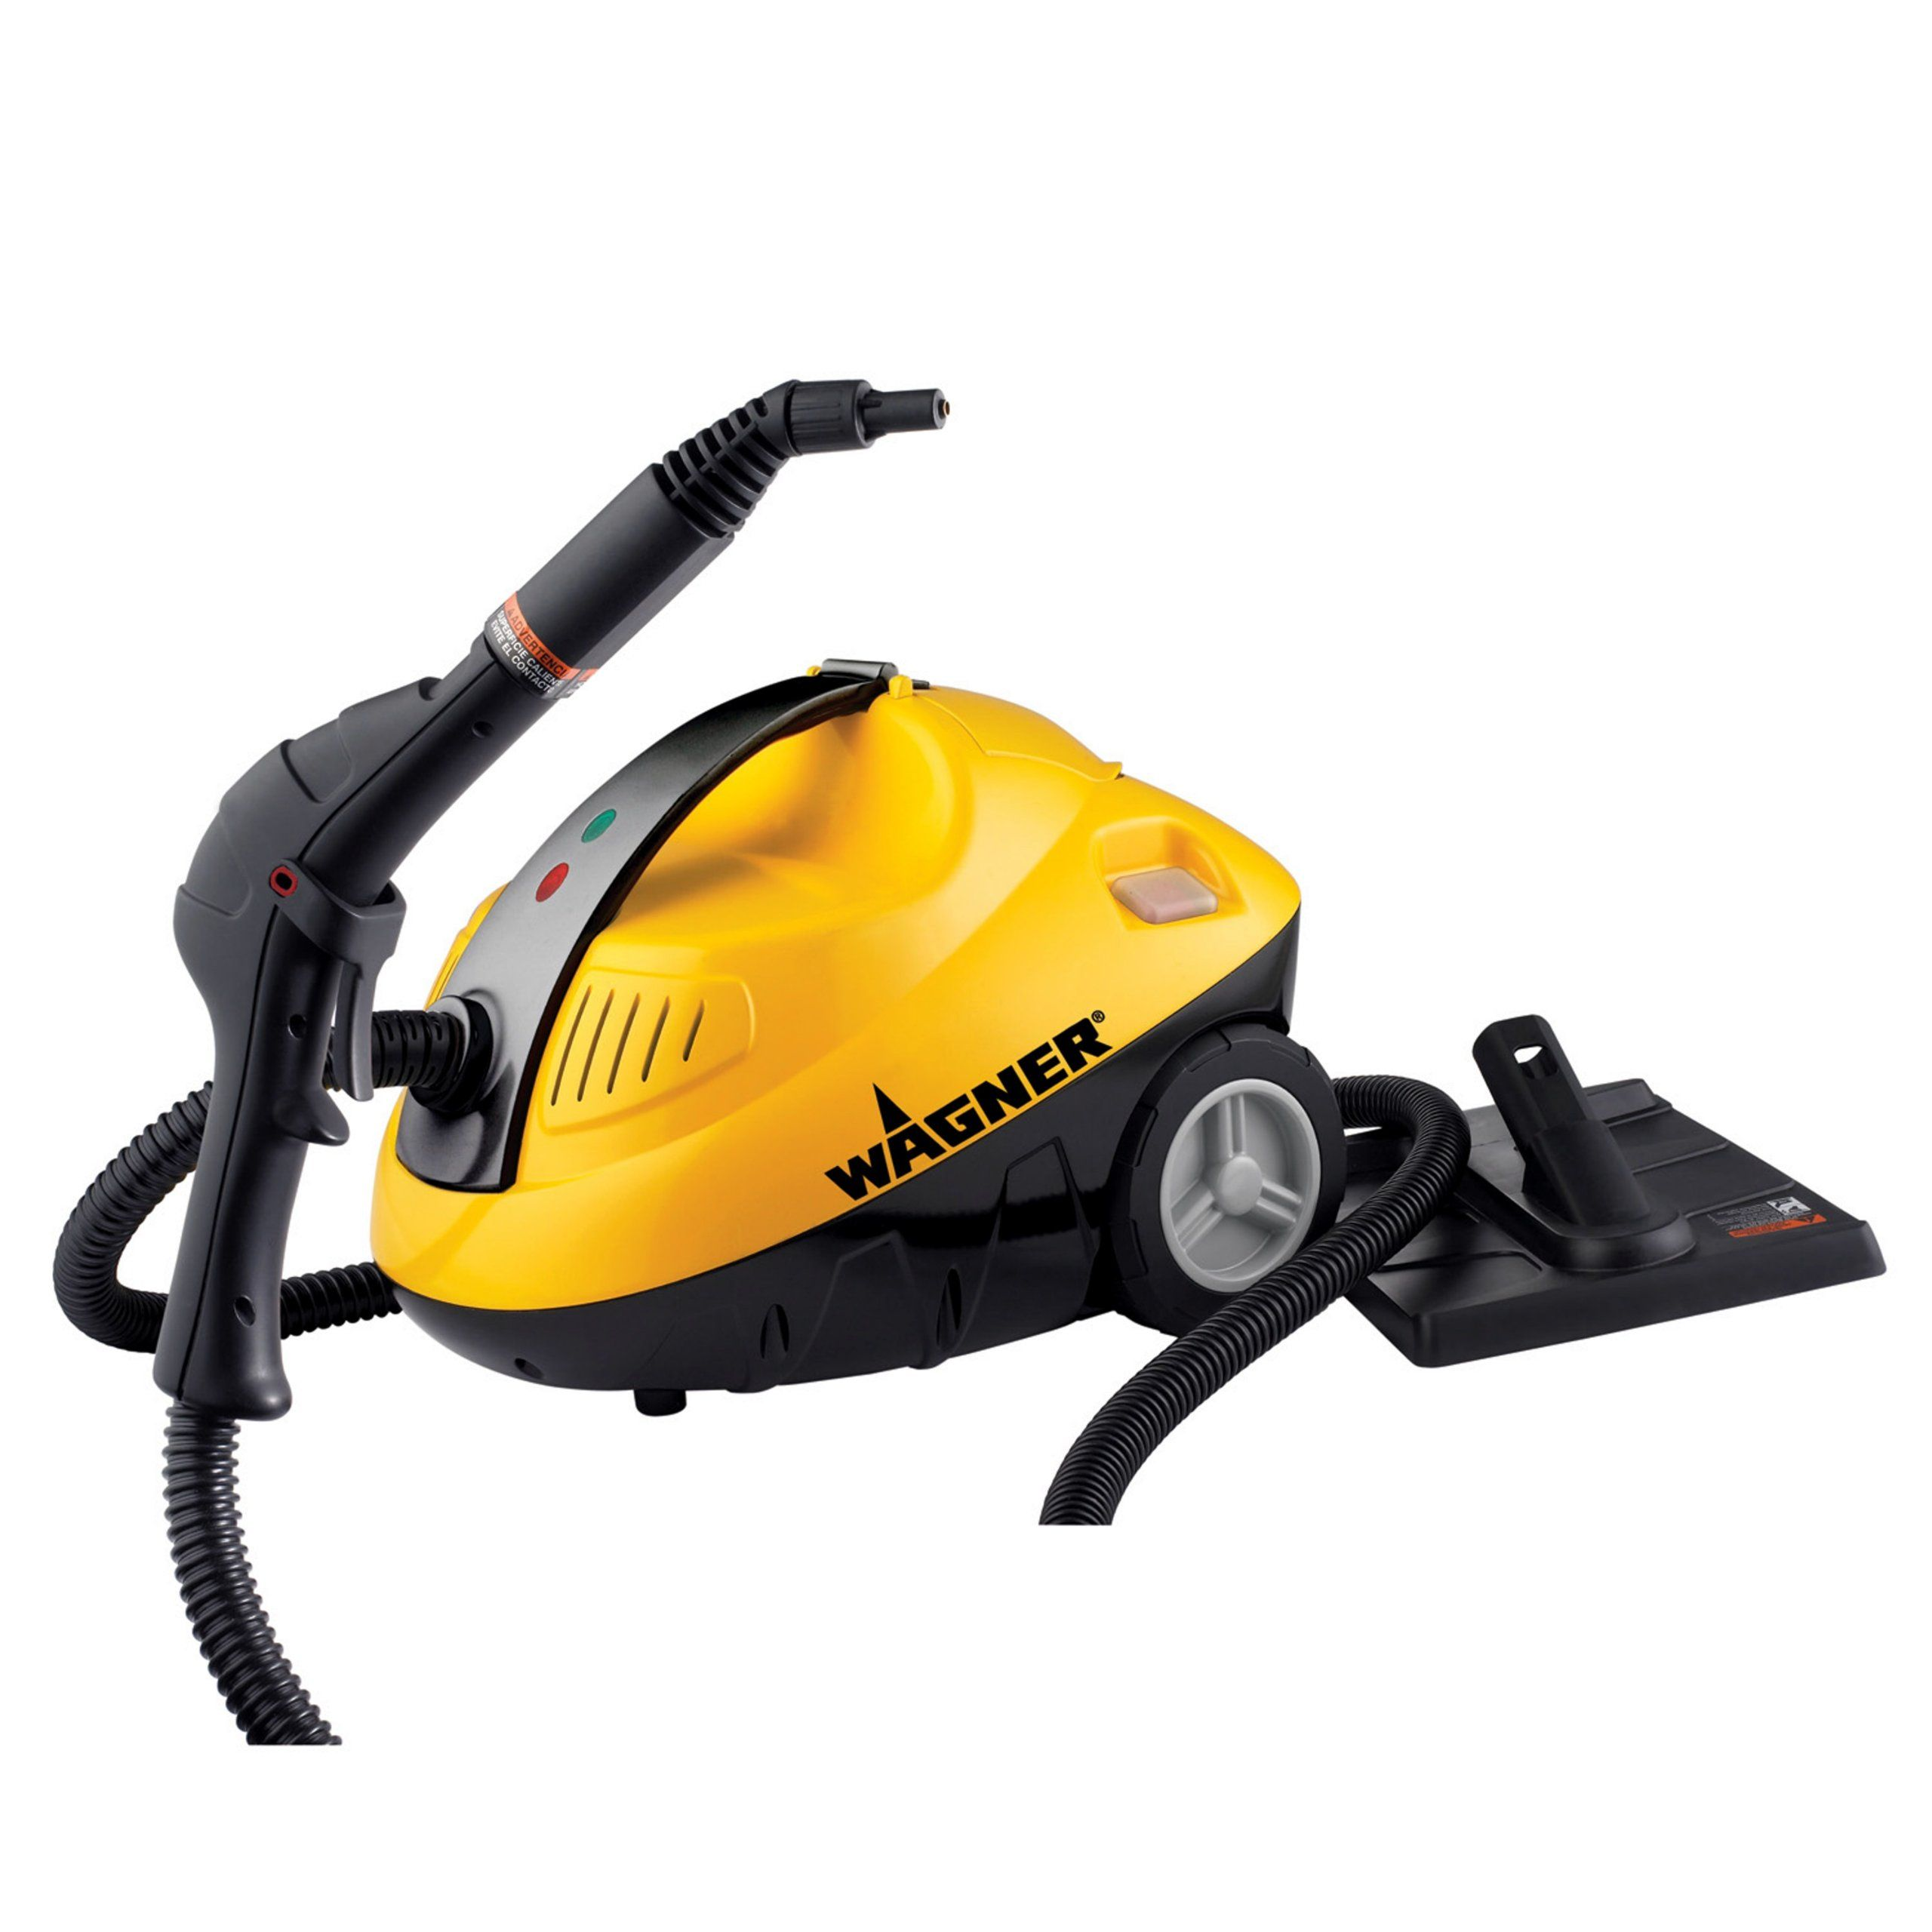 Wagner 915 (0282014) 1,500Watt OnDemand Power Steamer